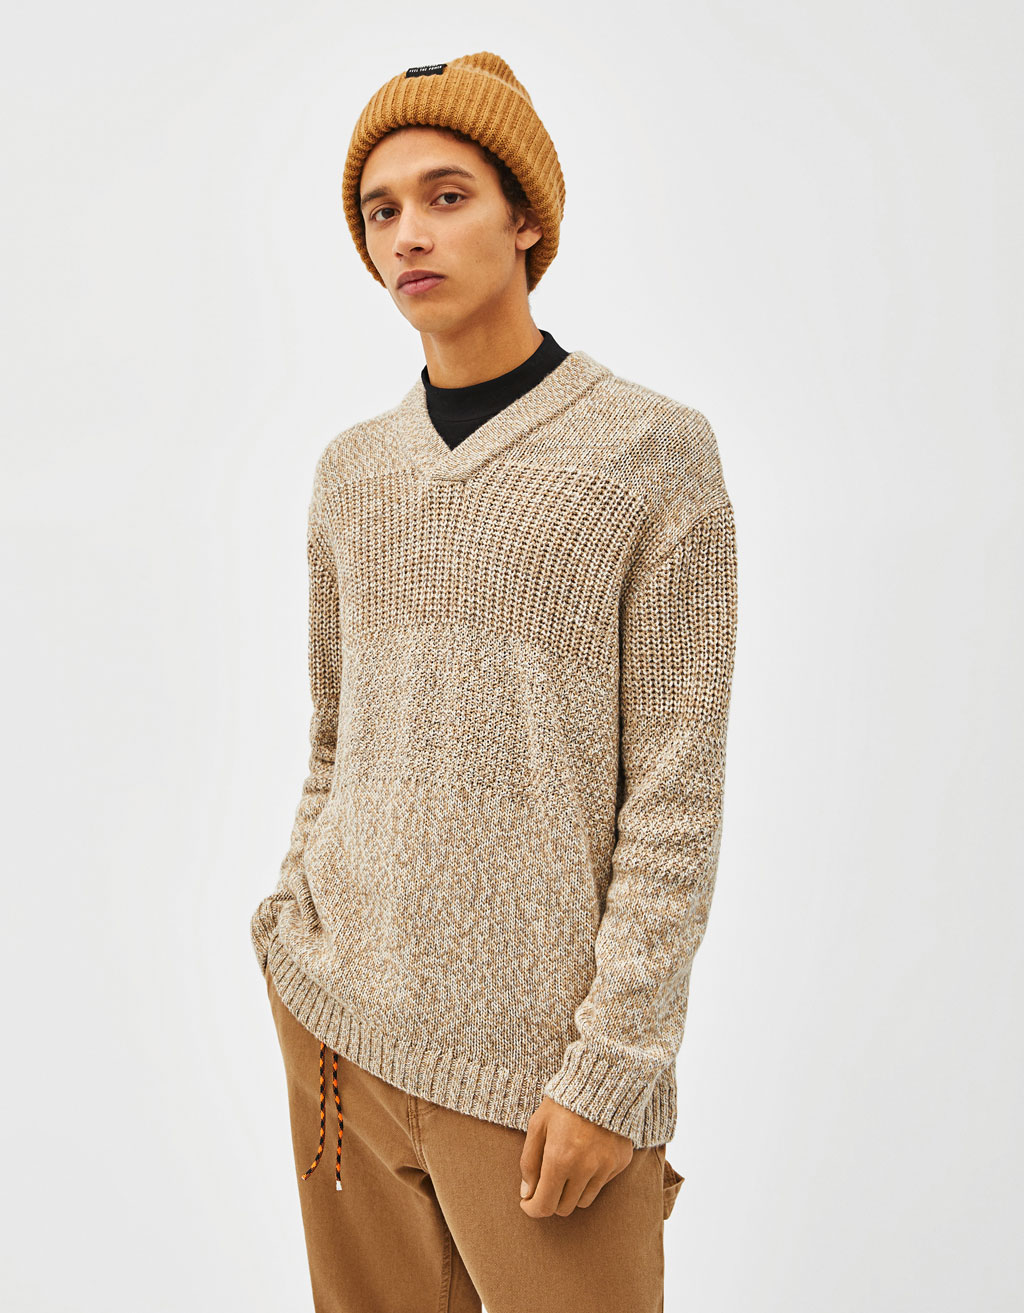 Pulover din tricot combinat